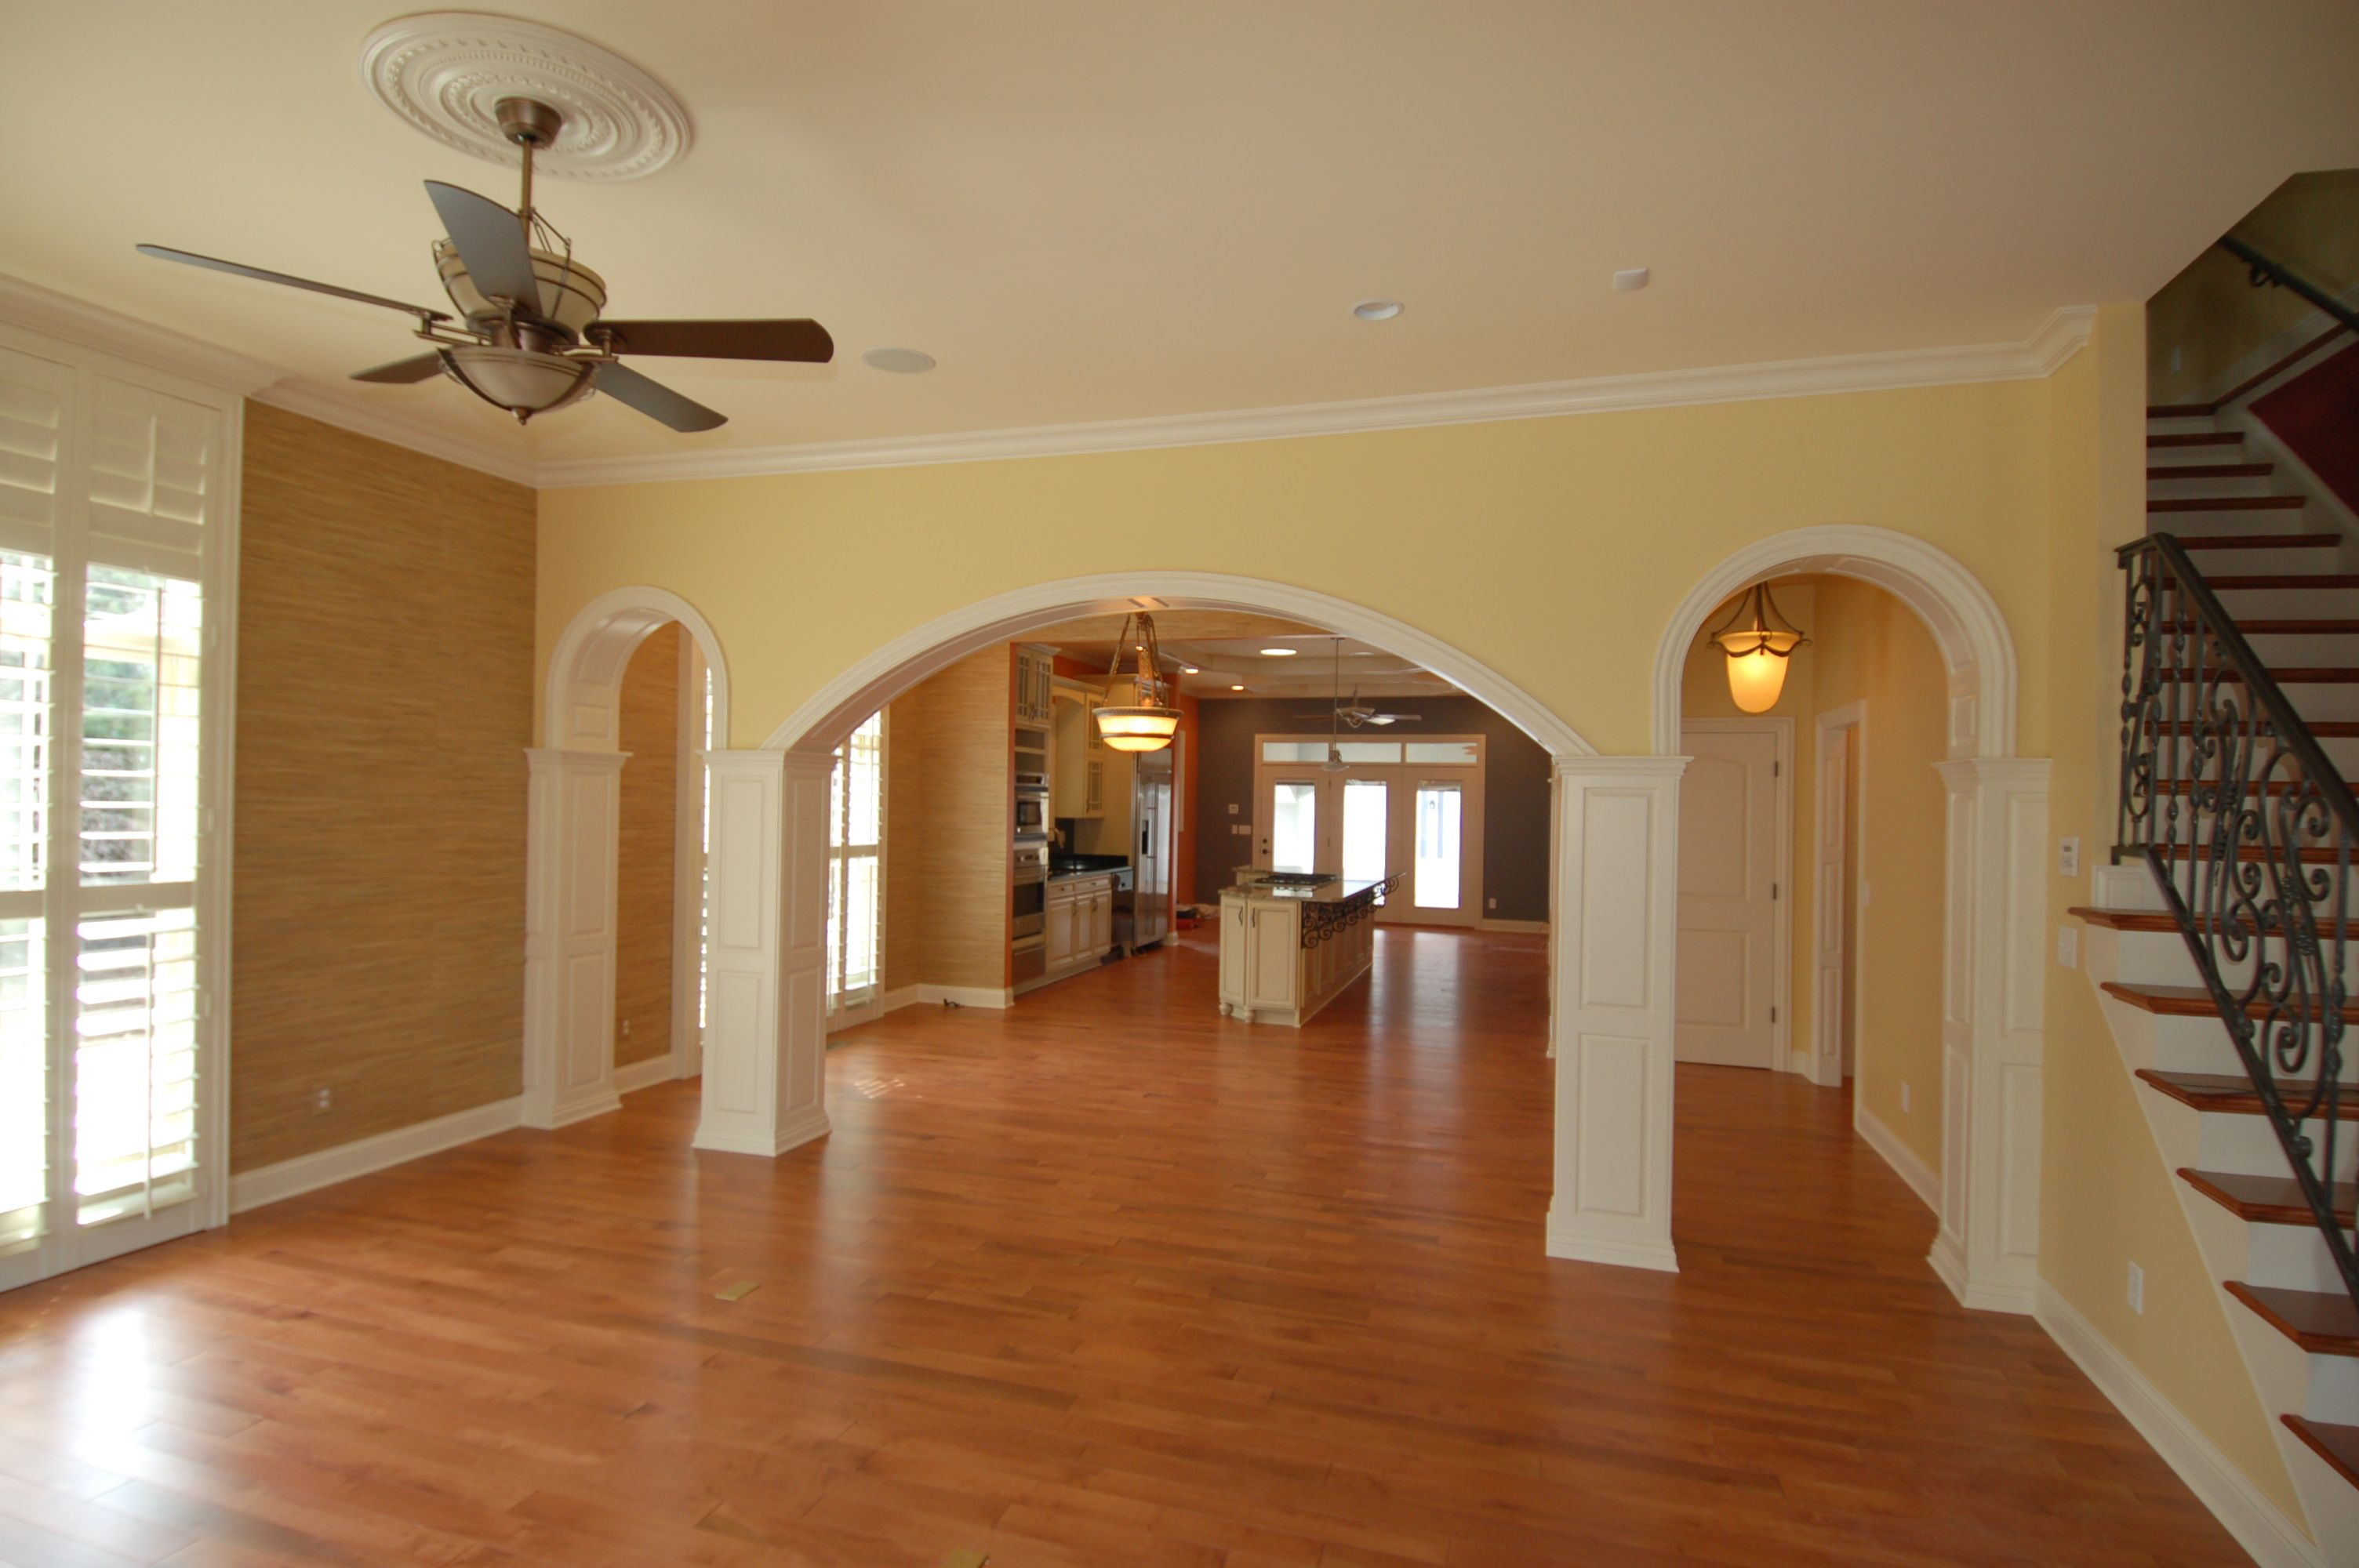 Interior painting project we listen to our customers and - Cheap interior detailing near me ...